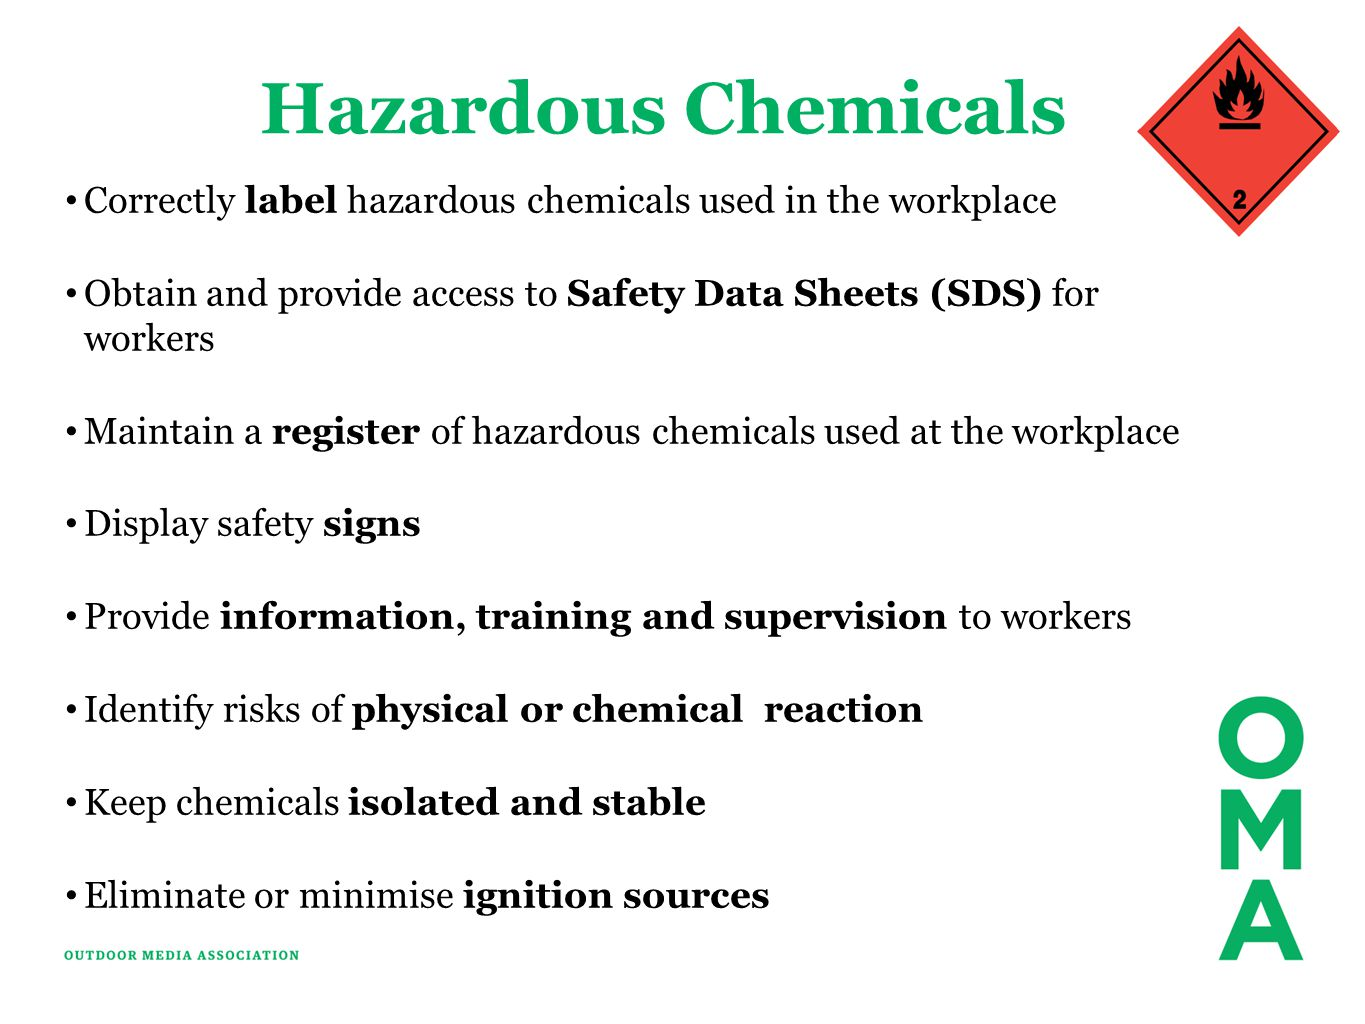 Hazardous Chemicals Correctly label hazardous chemicals used in the workplace. Obtain and provide access to Safety Data Sheets (SDS) for workers.